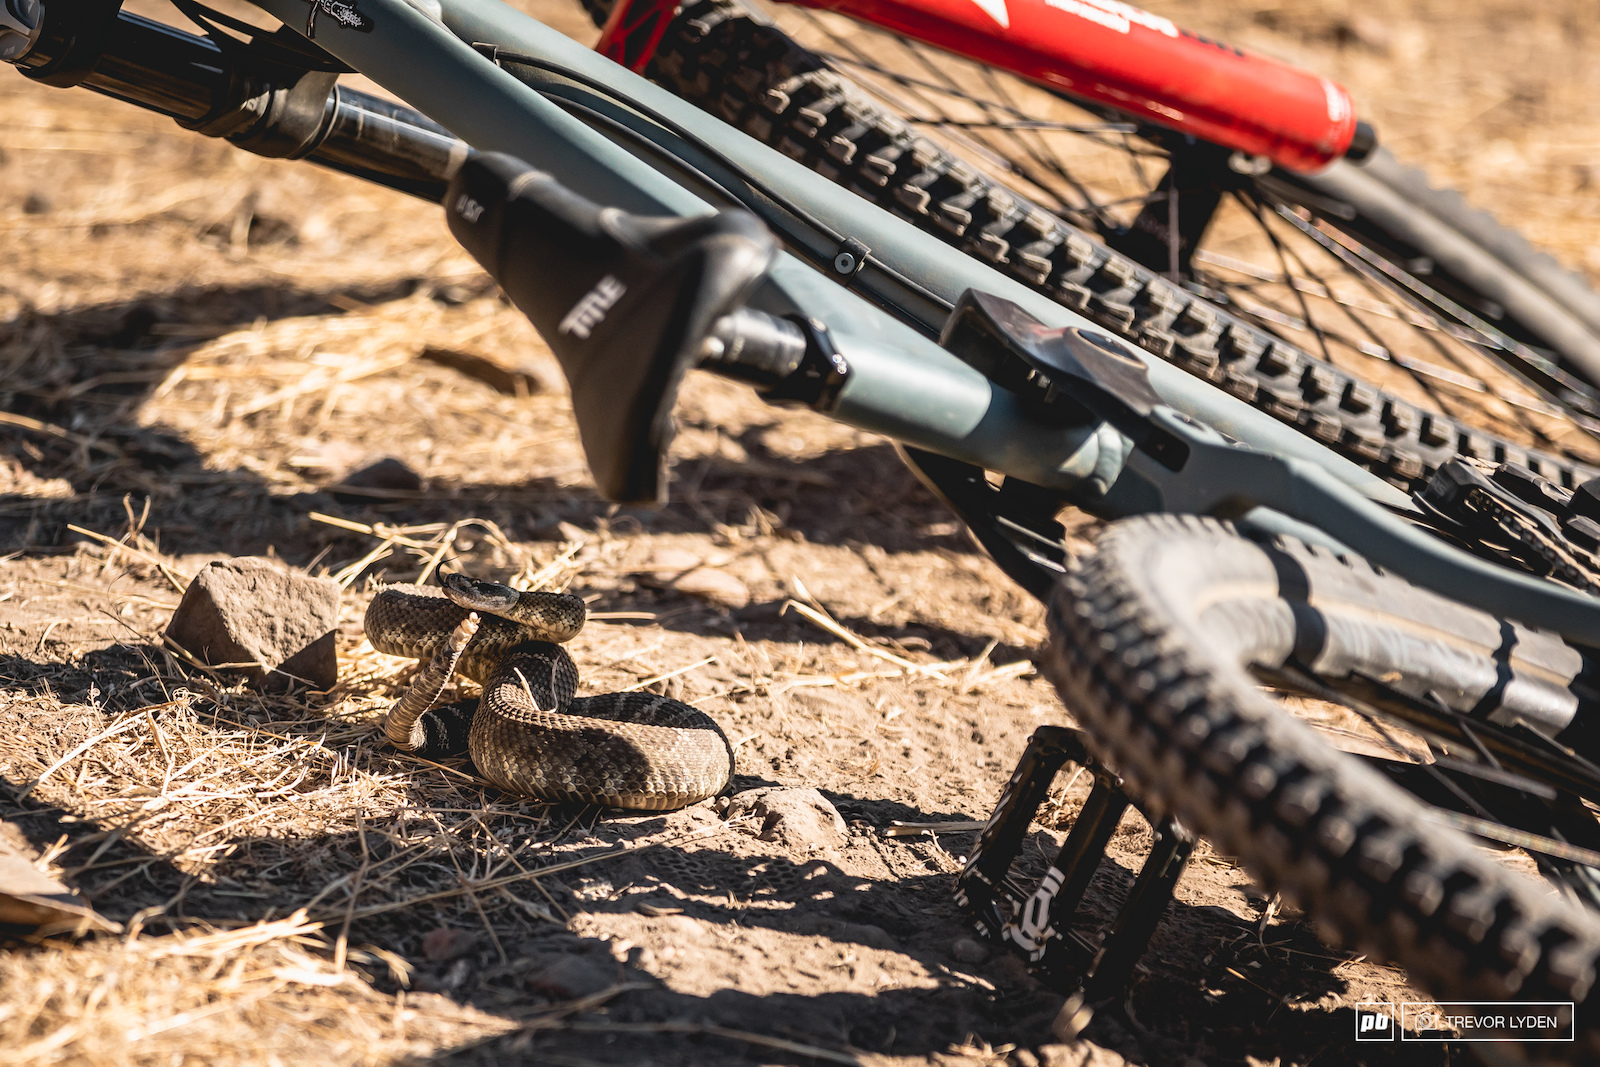 This rattlesnake was getting pumped watching everyone ride and wanted to take Tom s bike out for a spin.